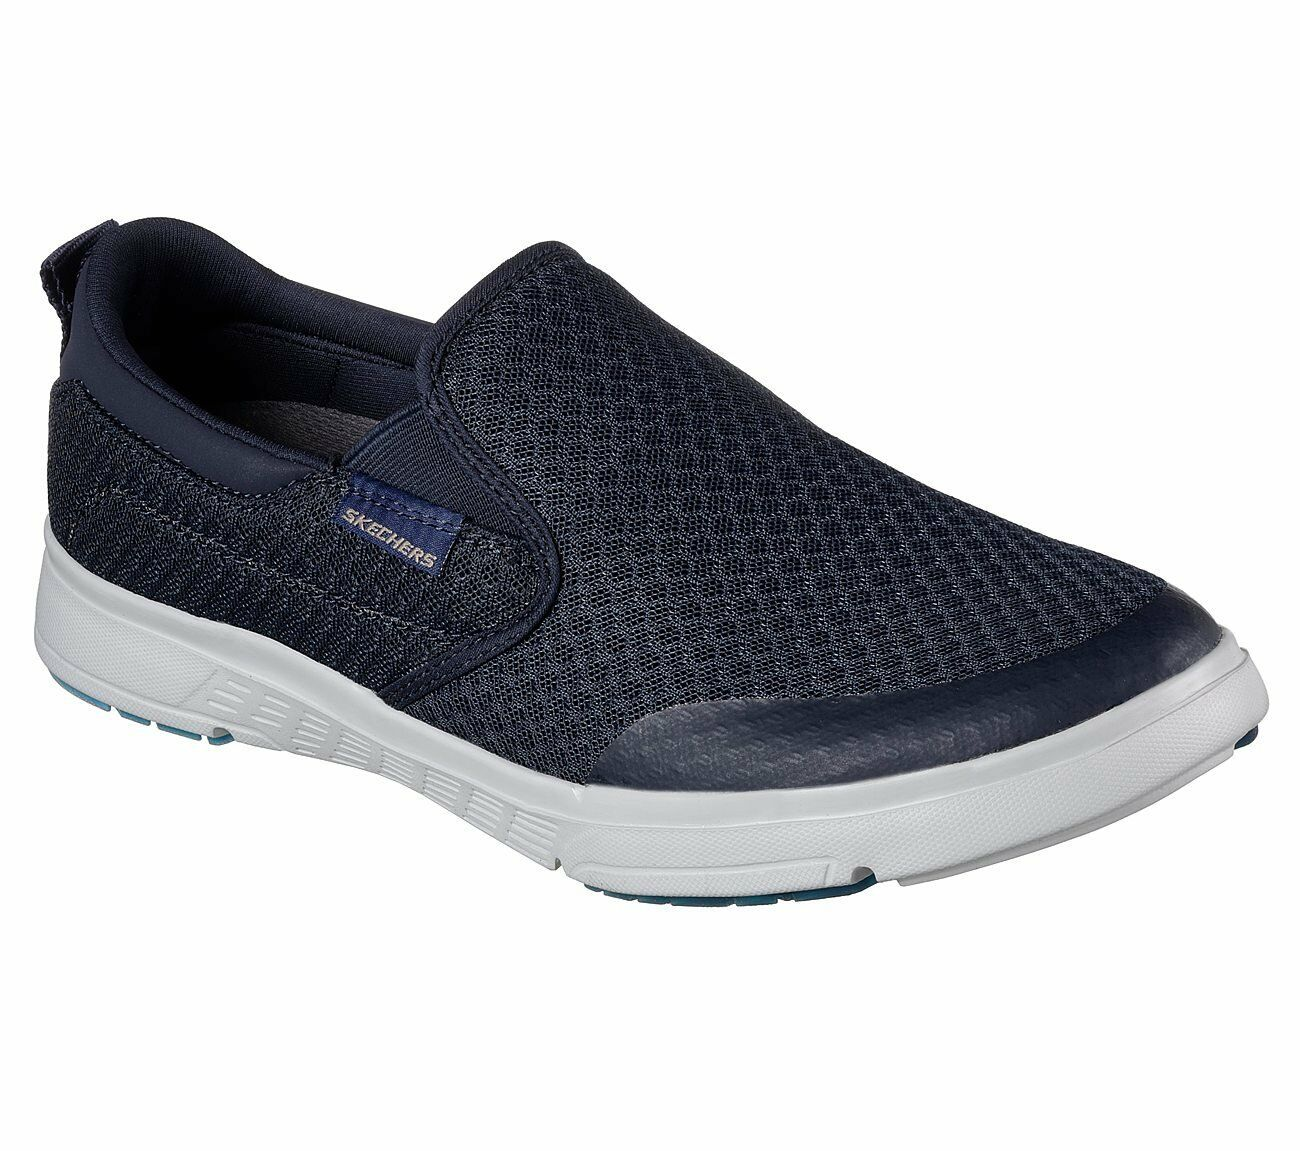 Skechers Moogen Sender Mens Slip On Loafers Navy 10.5